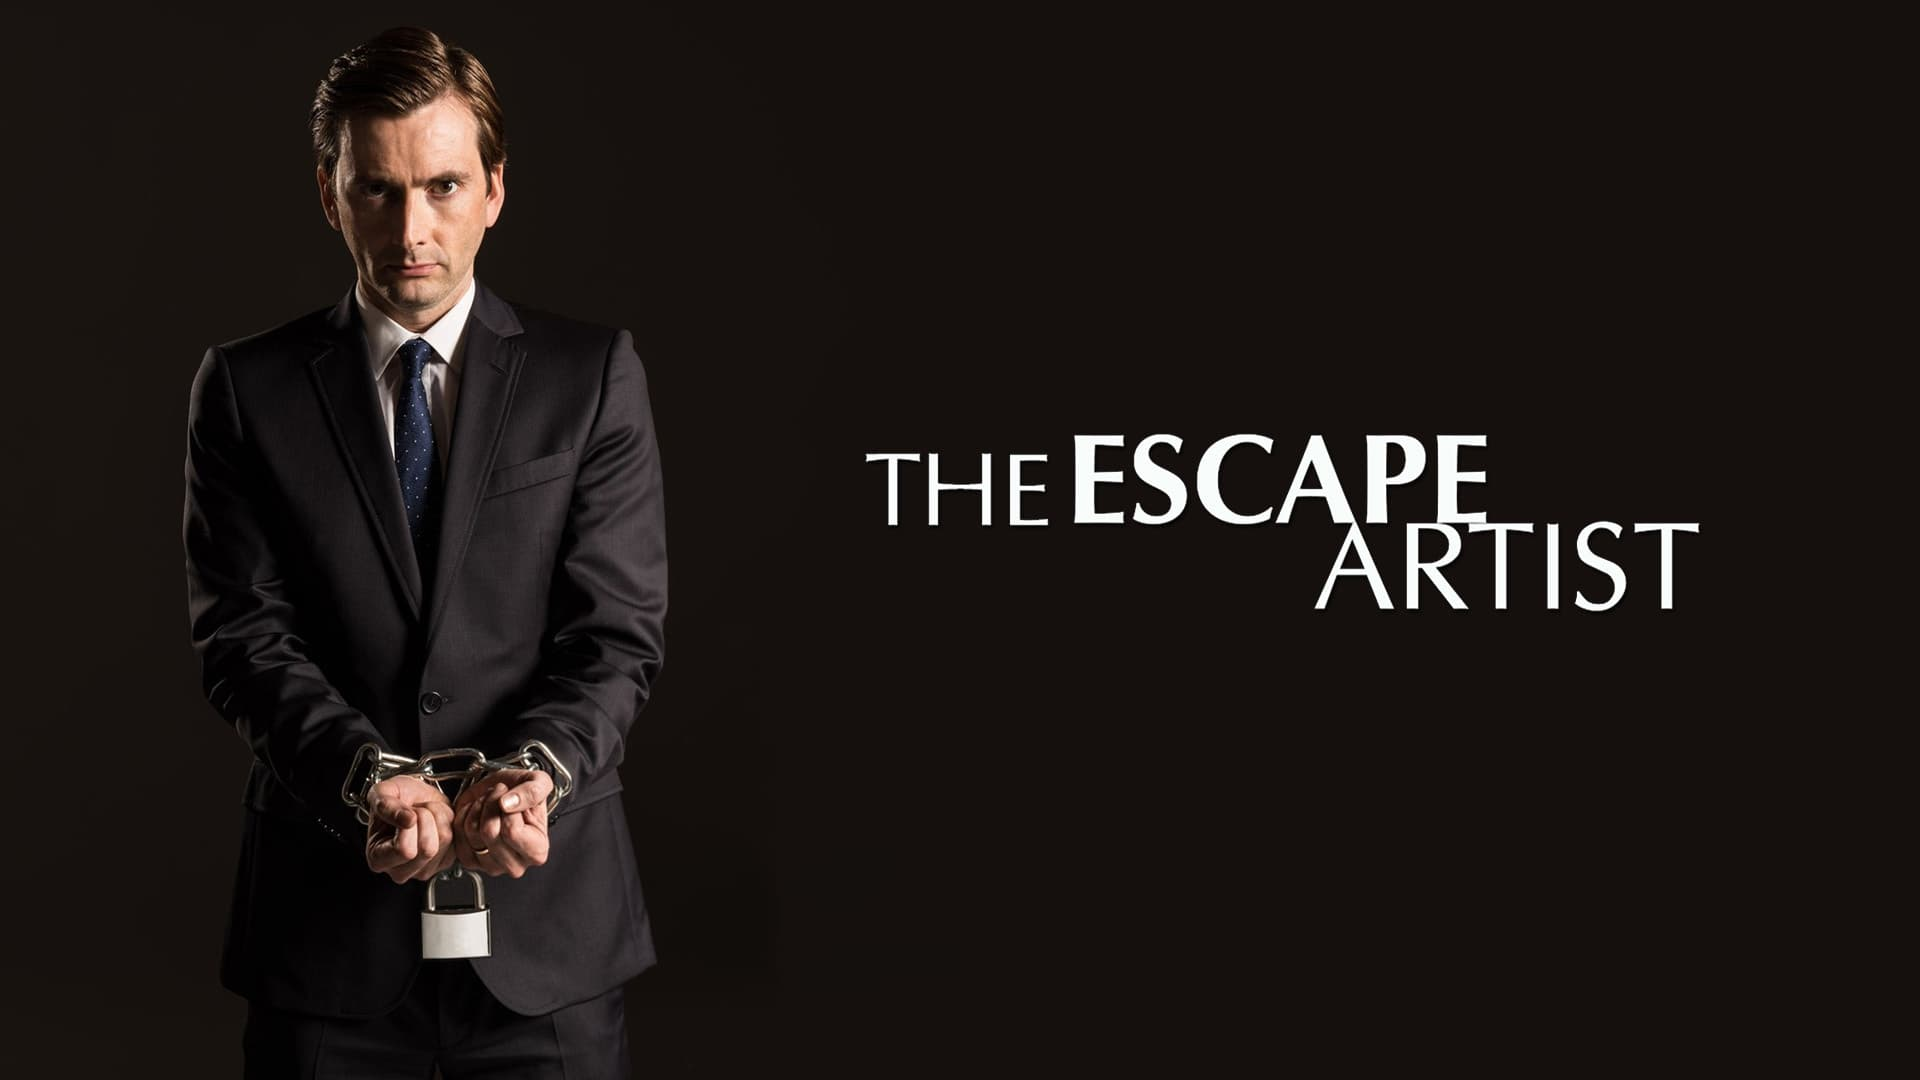 The Escape Artist